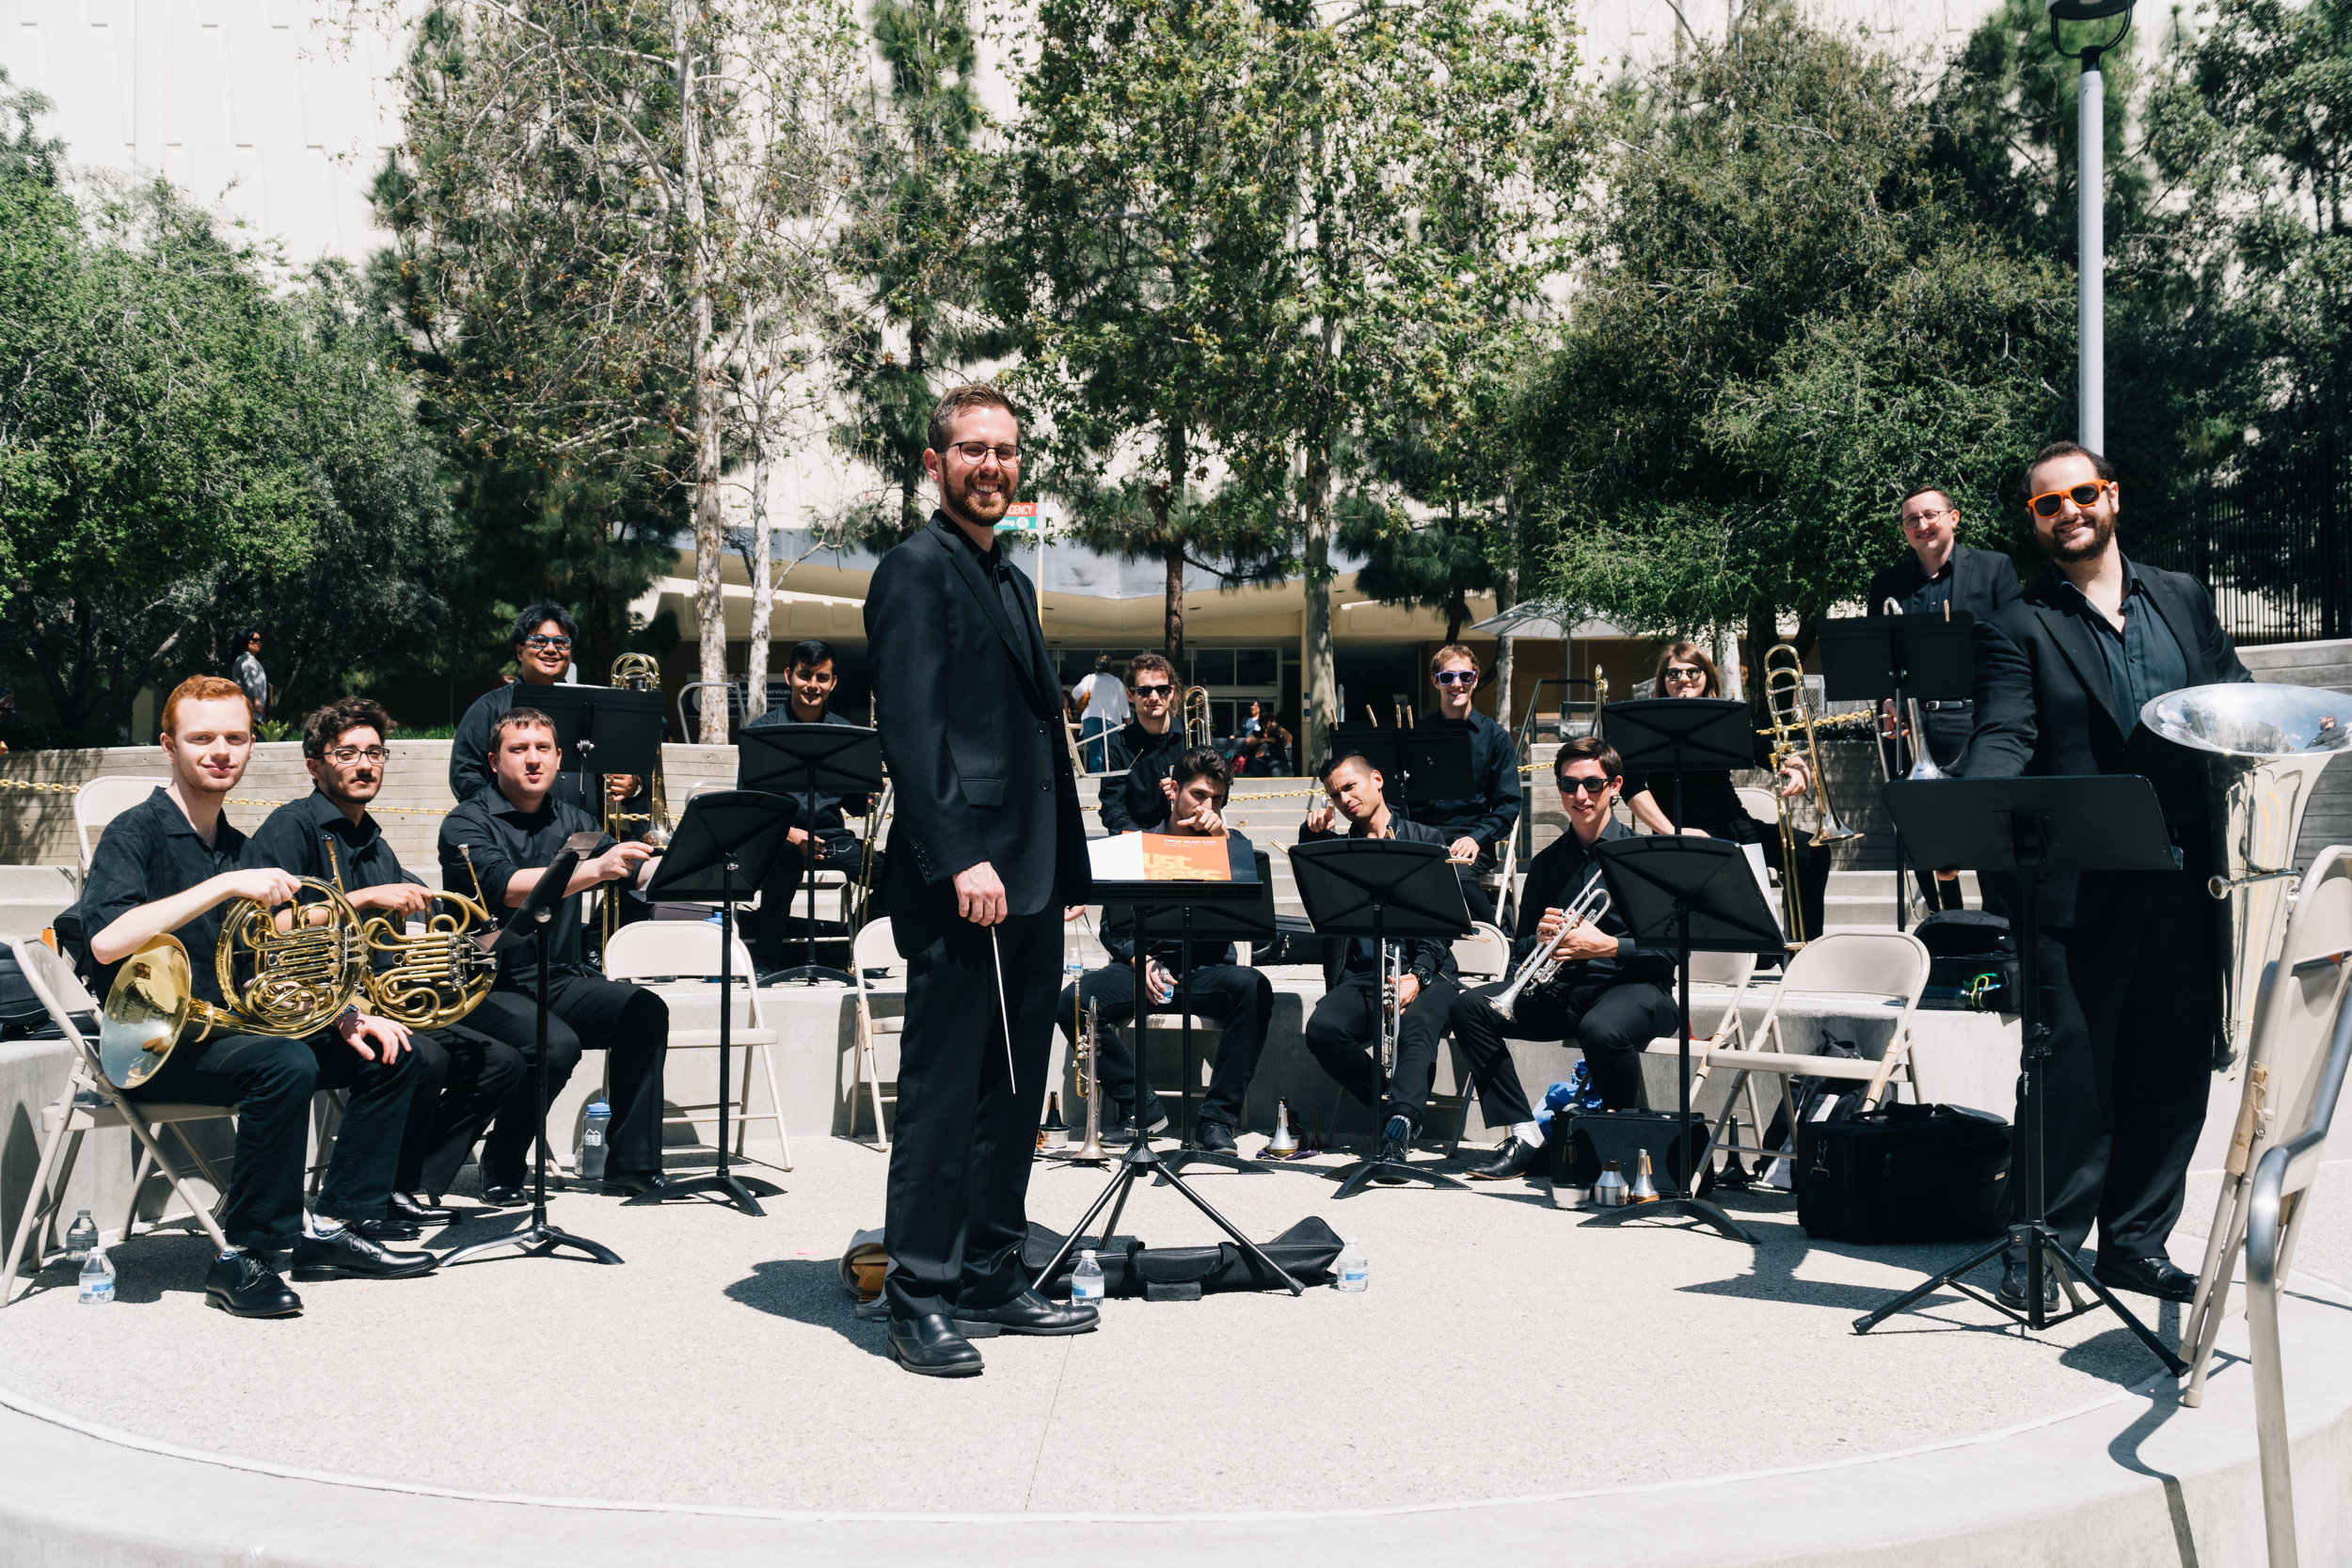 Trojan Brass @ USC+LAC Medical Center - Thursday, March 28, 2019